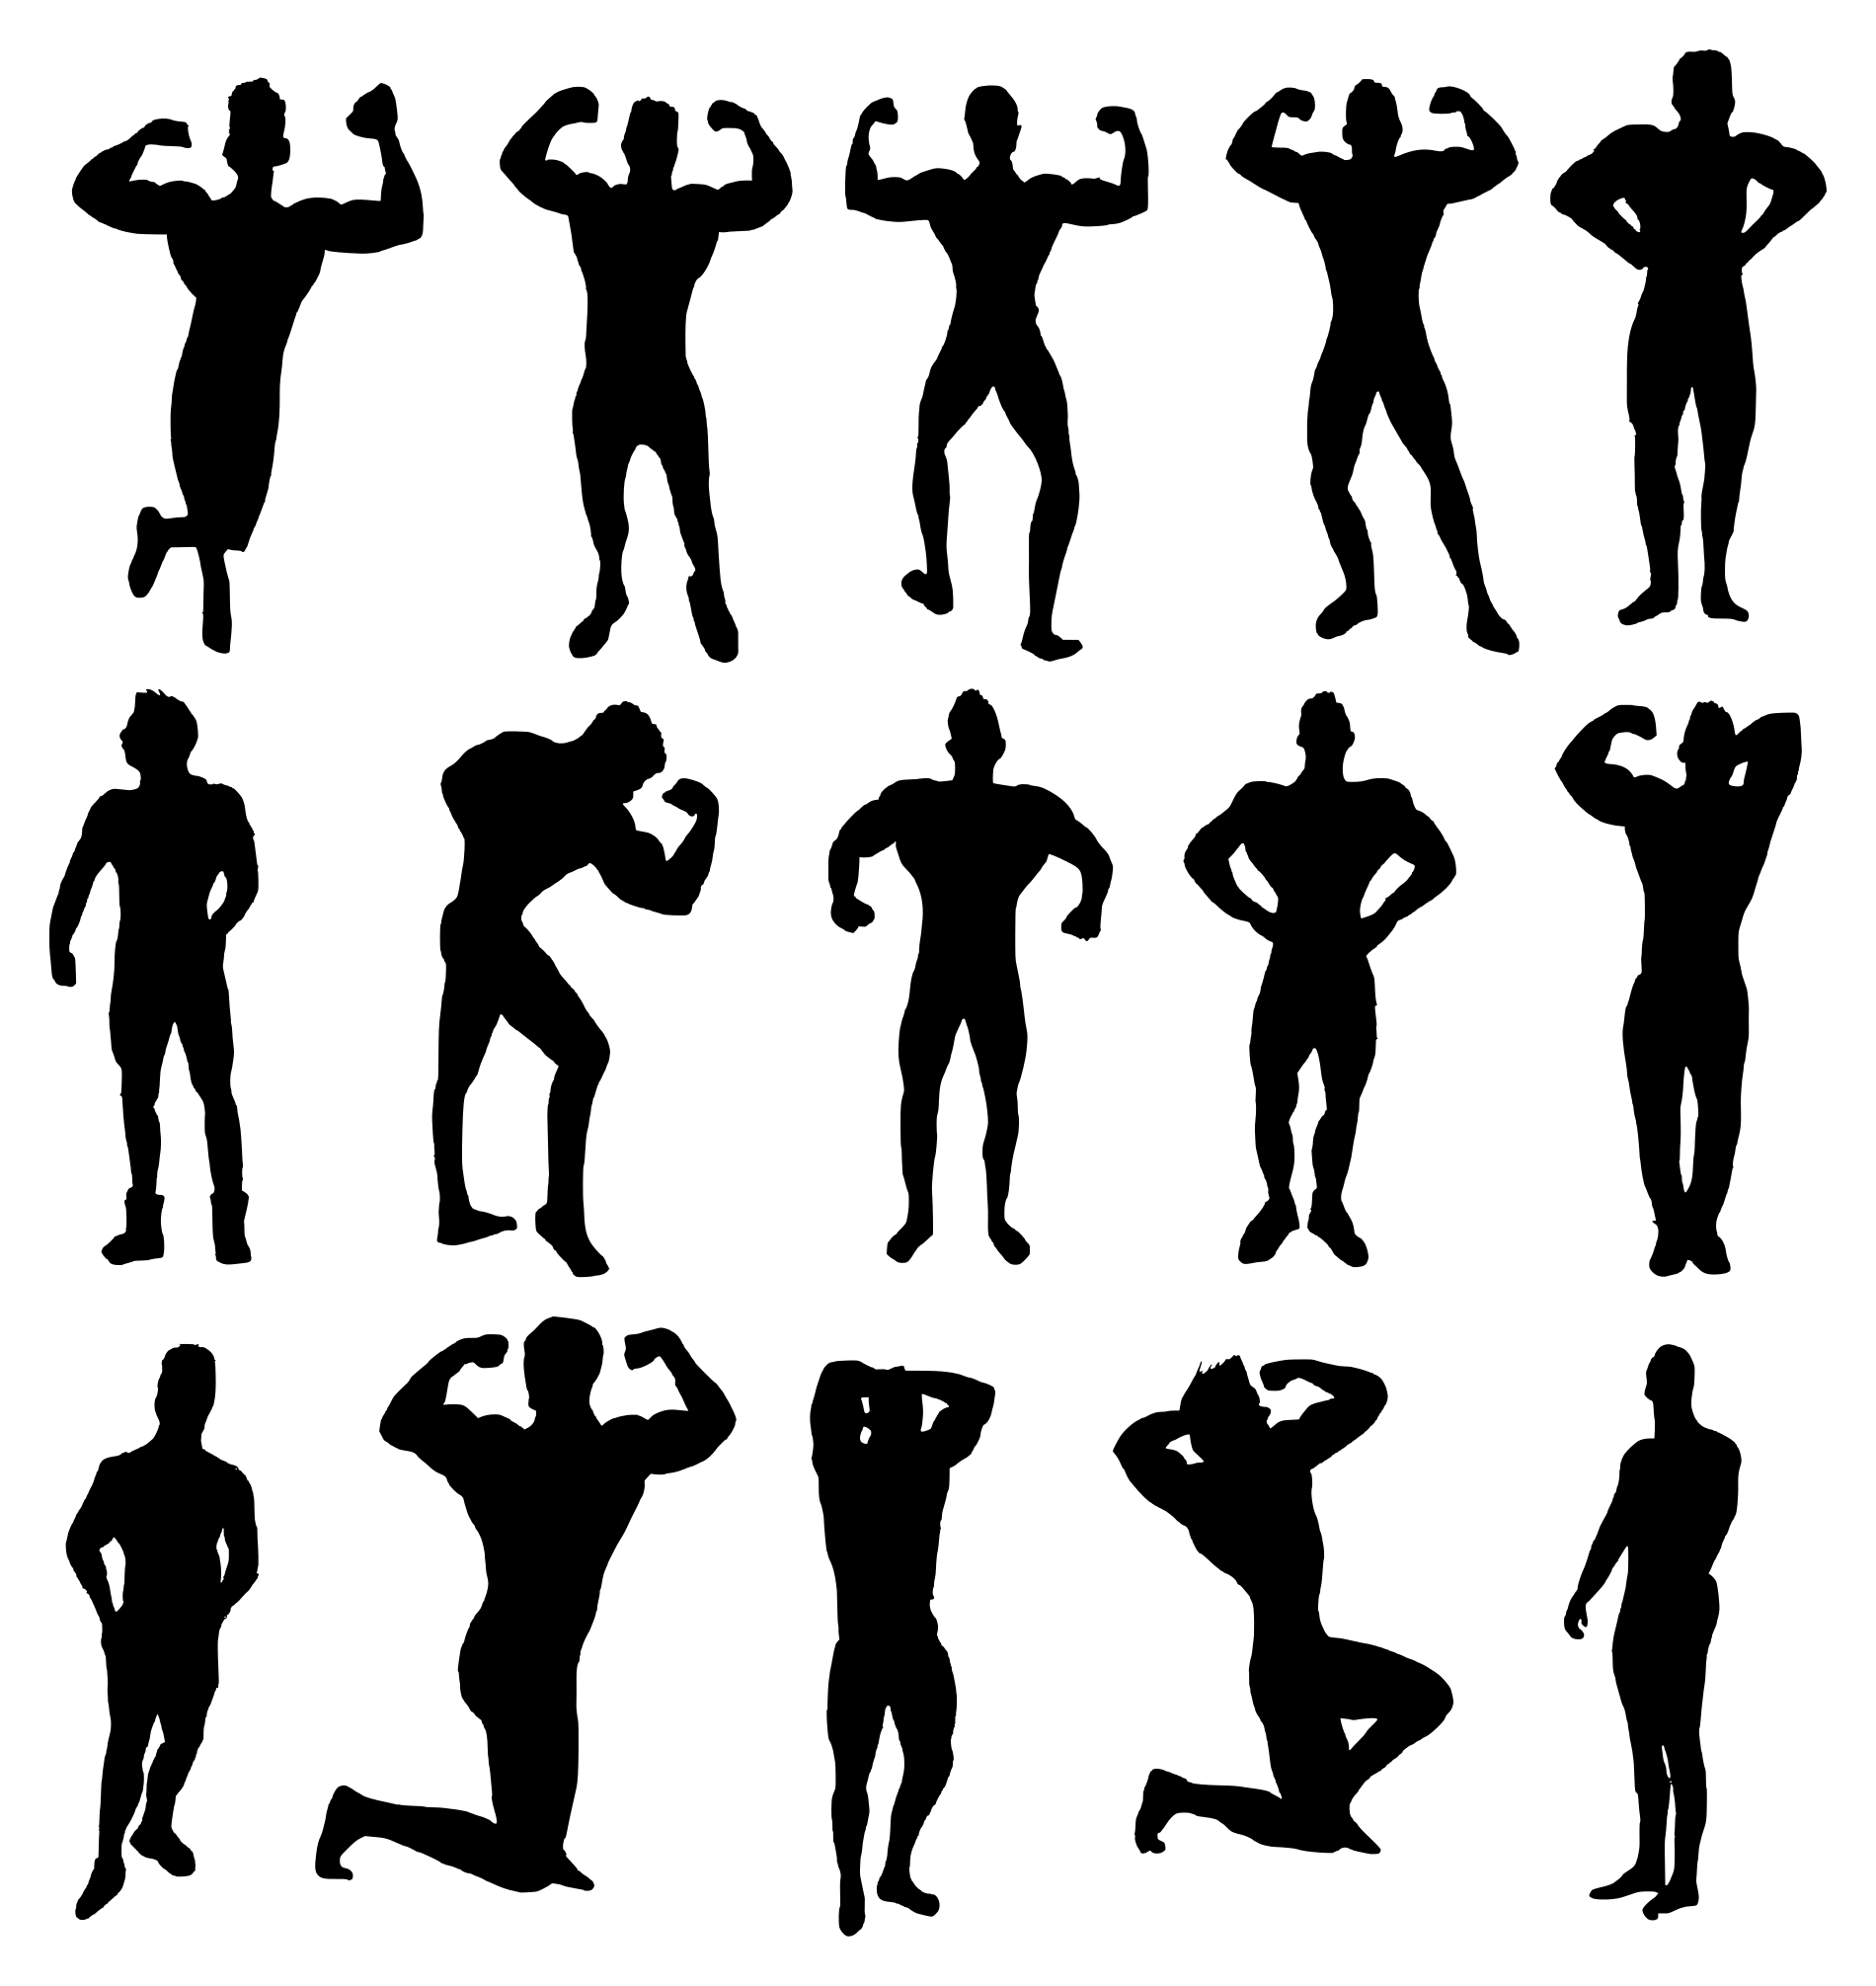 15 Muscle Man Body Builder Silhouette Transparent